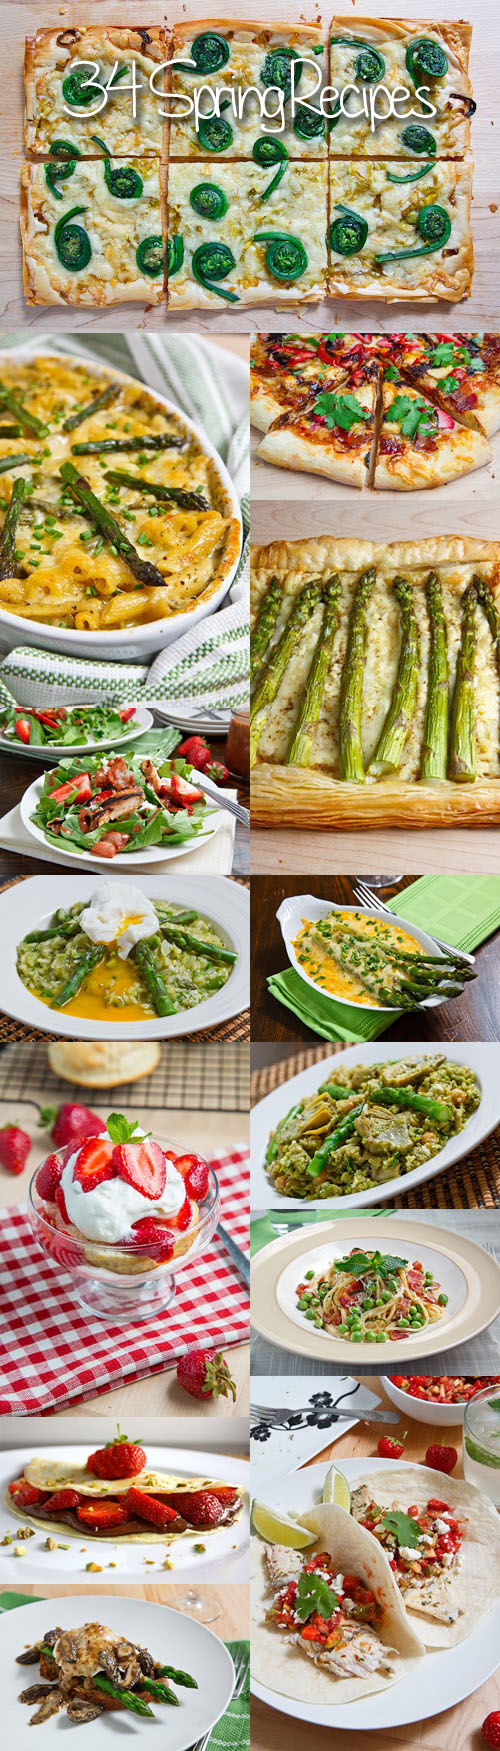 34 Spring Recipes